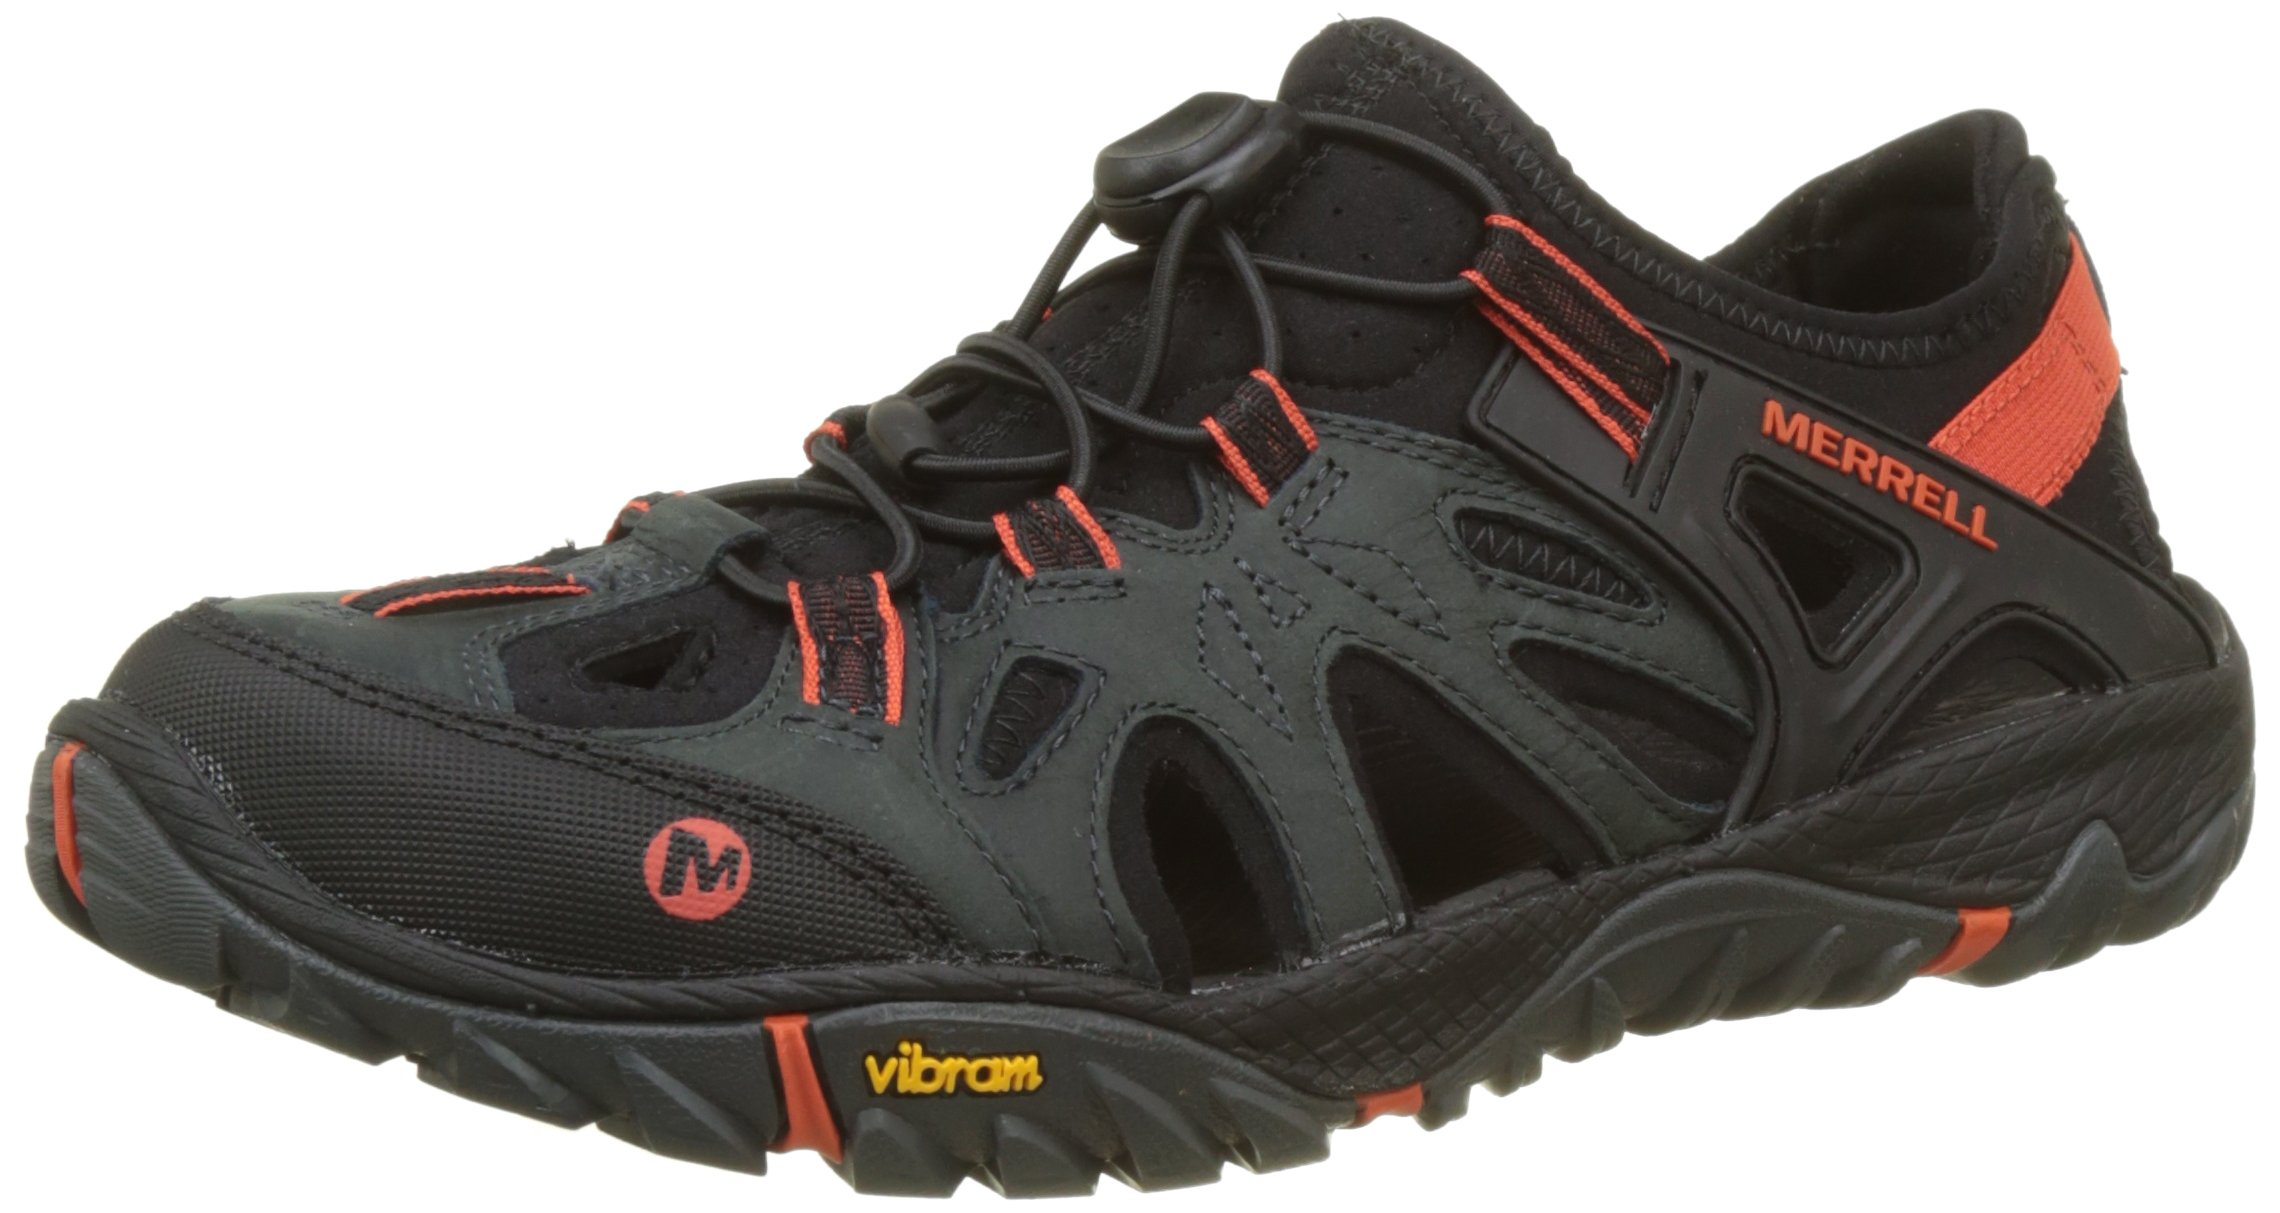 Merrell Men's All Out Blaze Sieve Water Shoes, Grey Dark Slate, 9.5 M US by Merrell